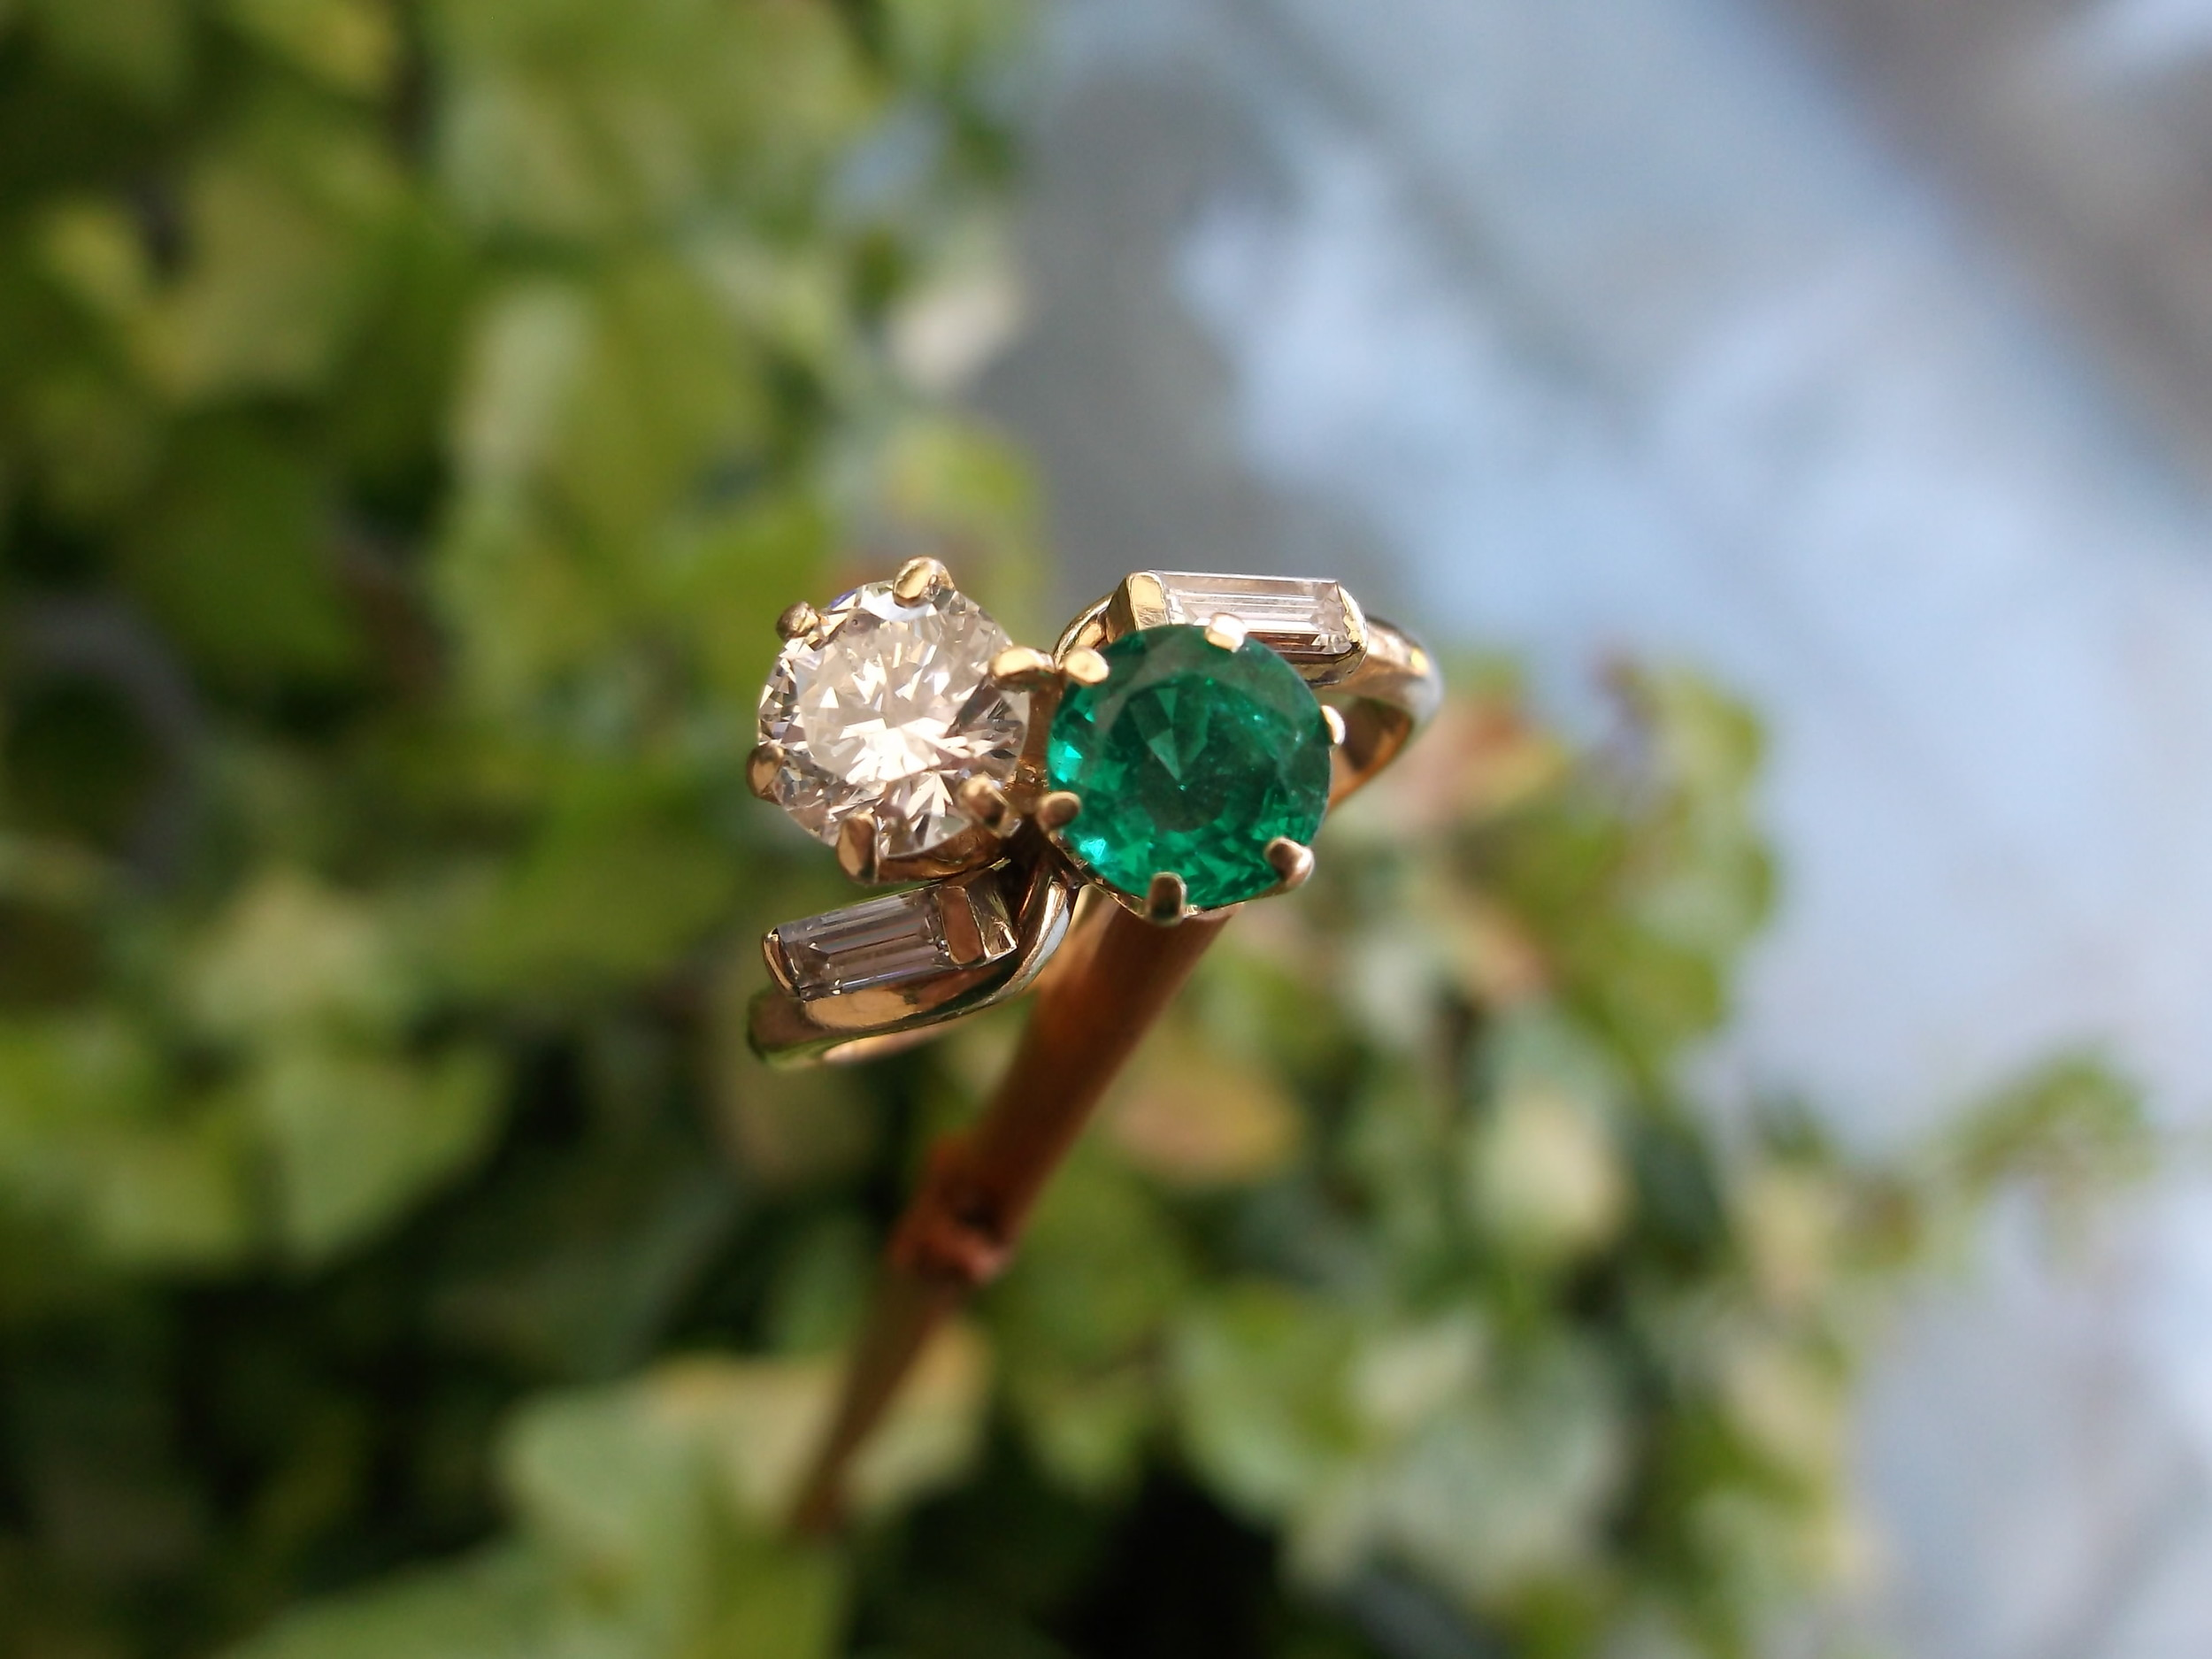 SOLD - Beautiful 1950's diamond and emerald bypass ring with a 0.80 carat round brillant diamond and a 0.70 carat emerald set in 14K yellow gold with baguette diamond detail.